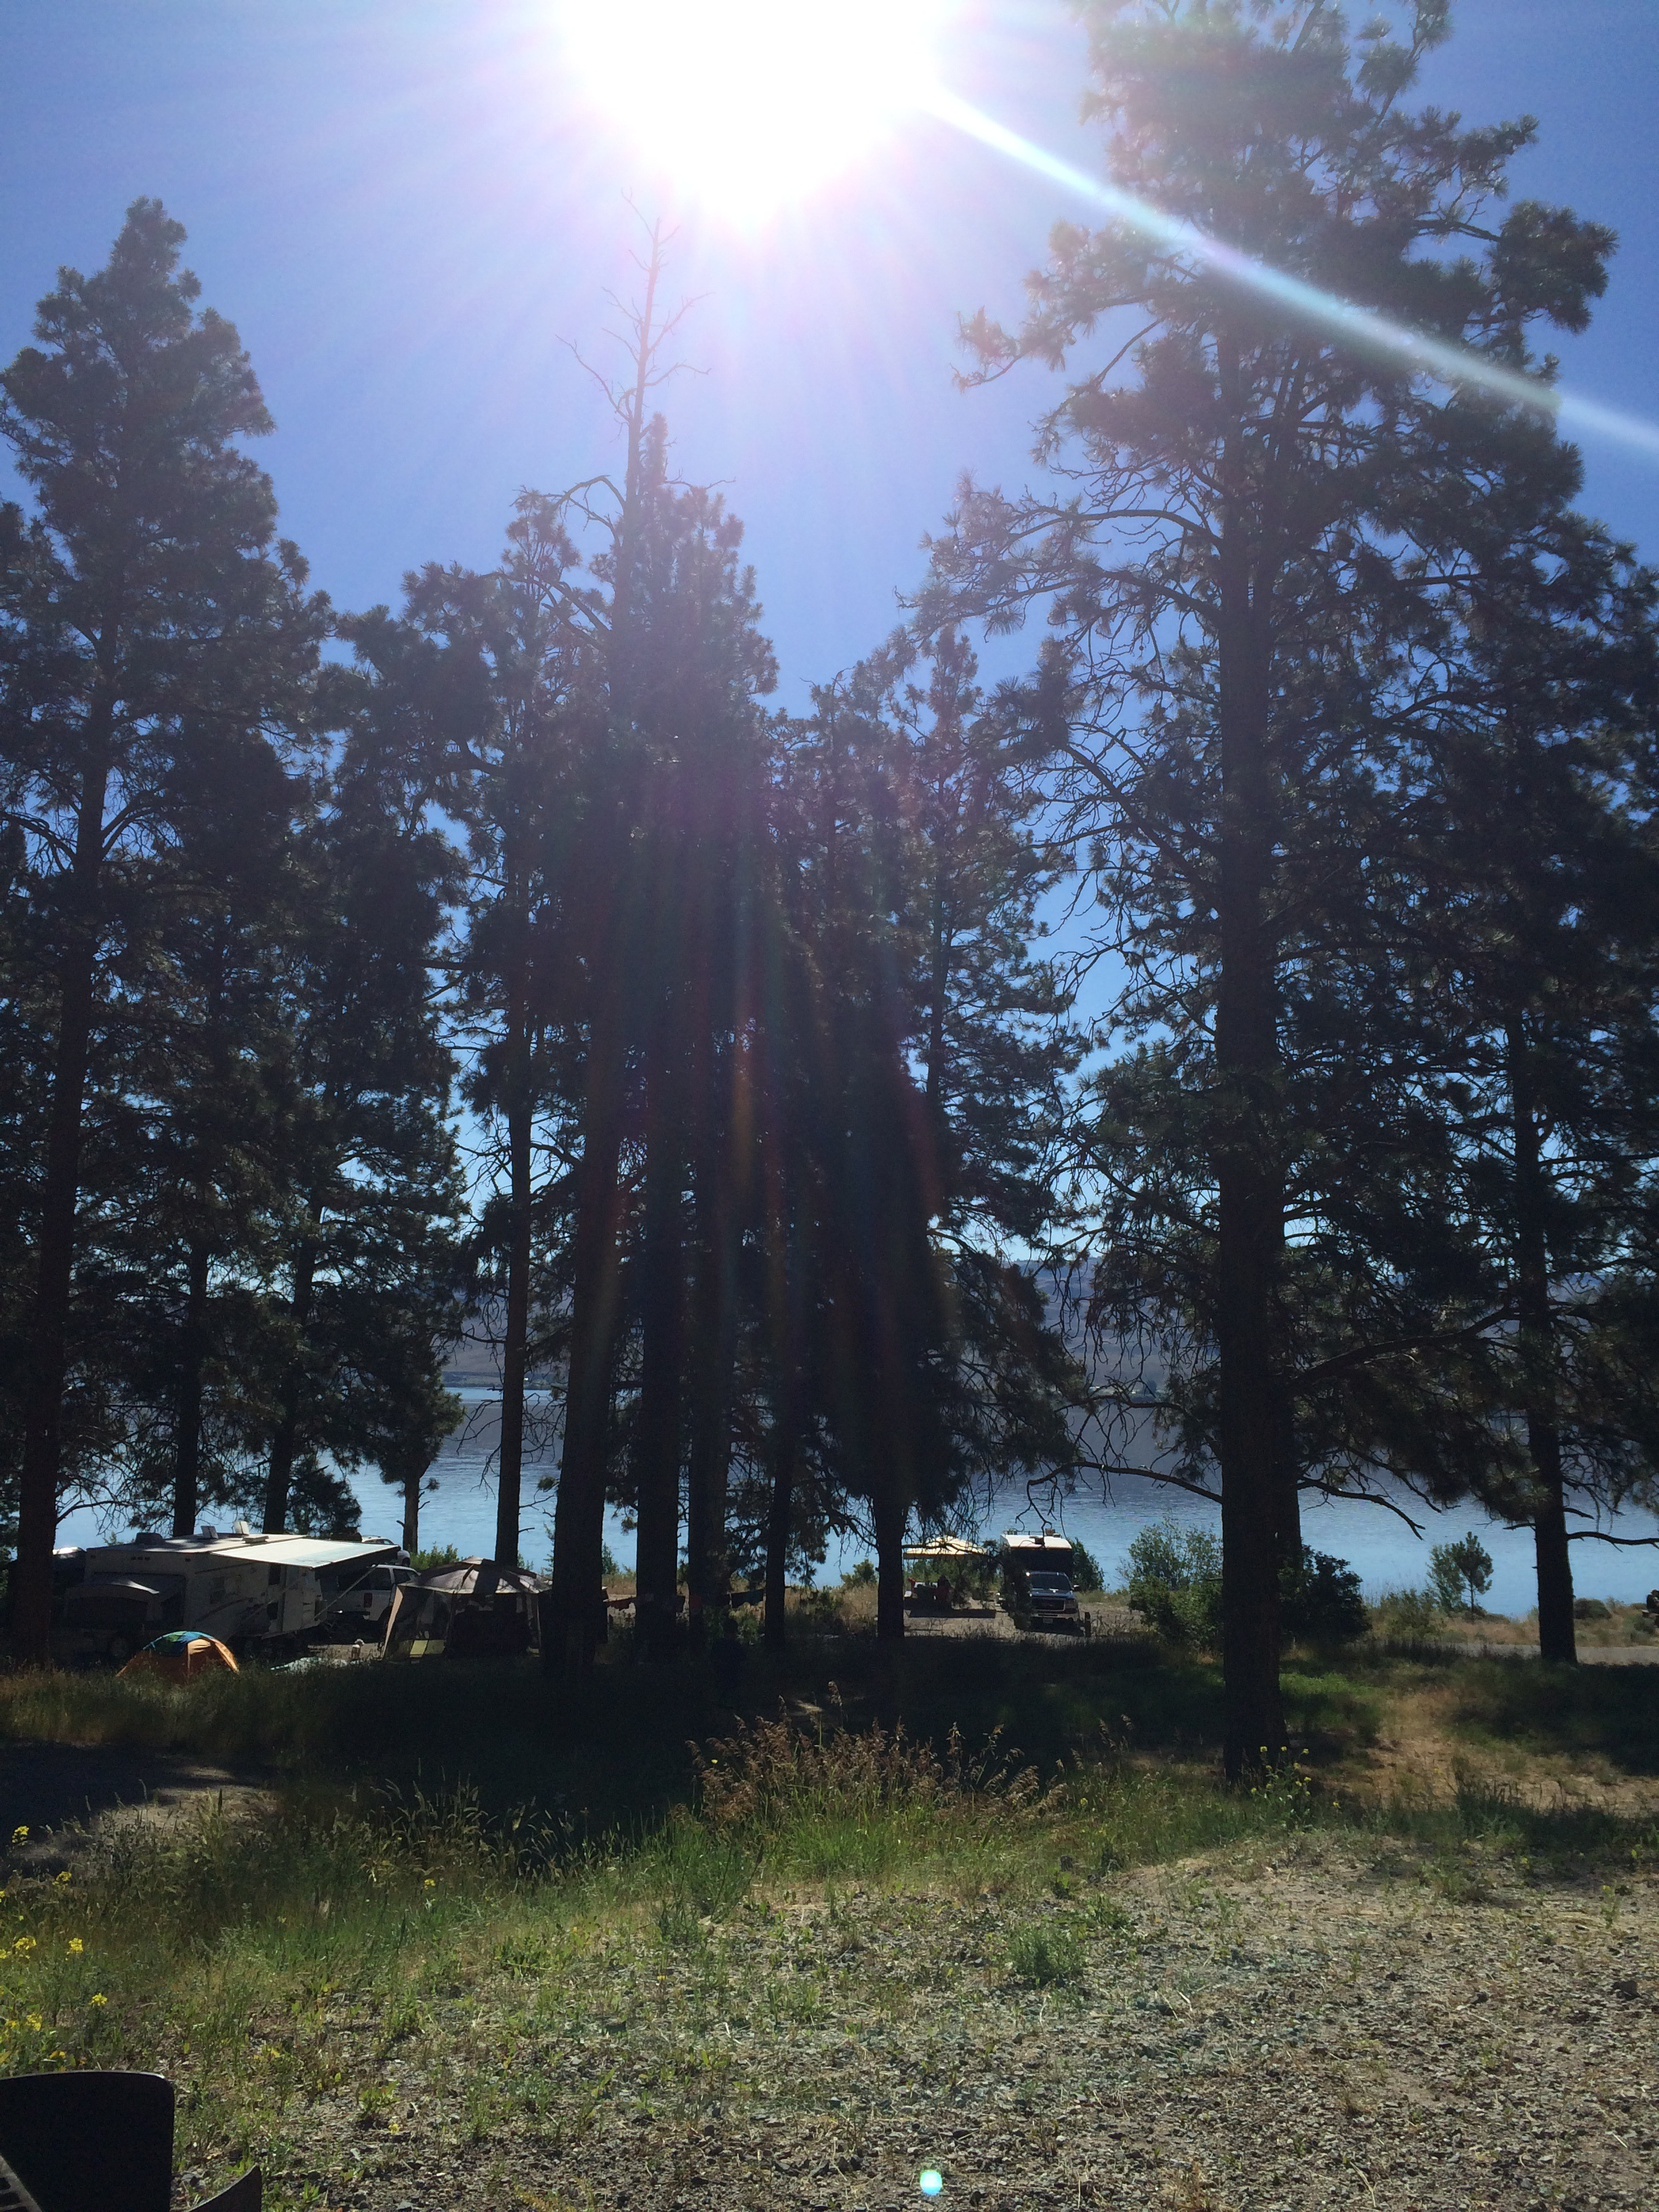 A view from one of the campsites - not ours. Look at all those trees.